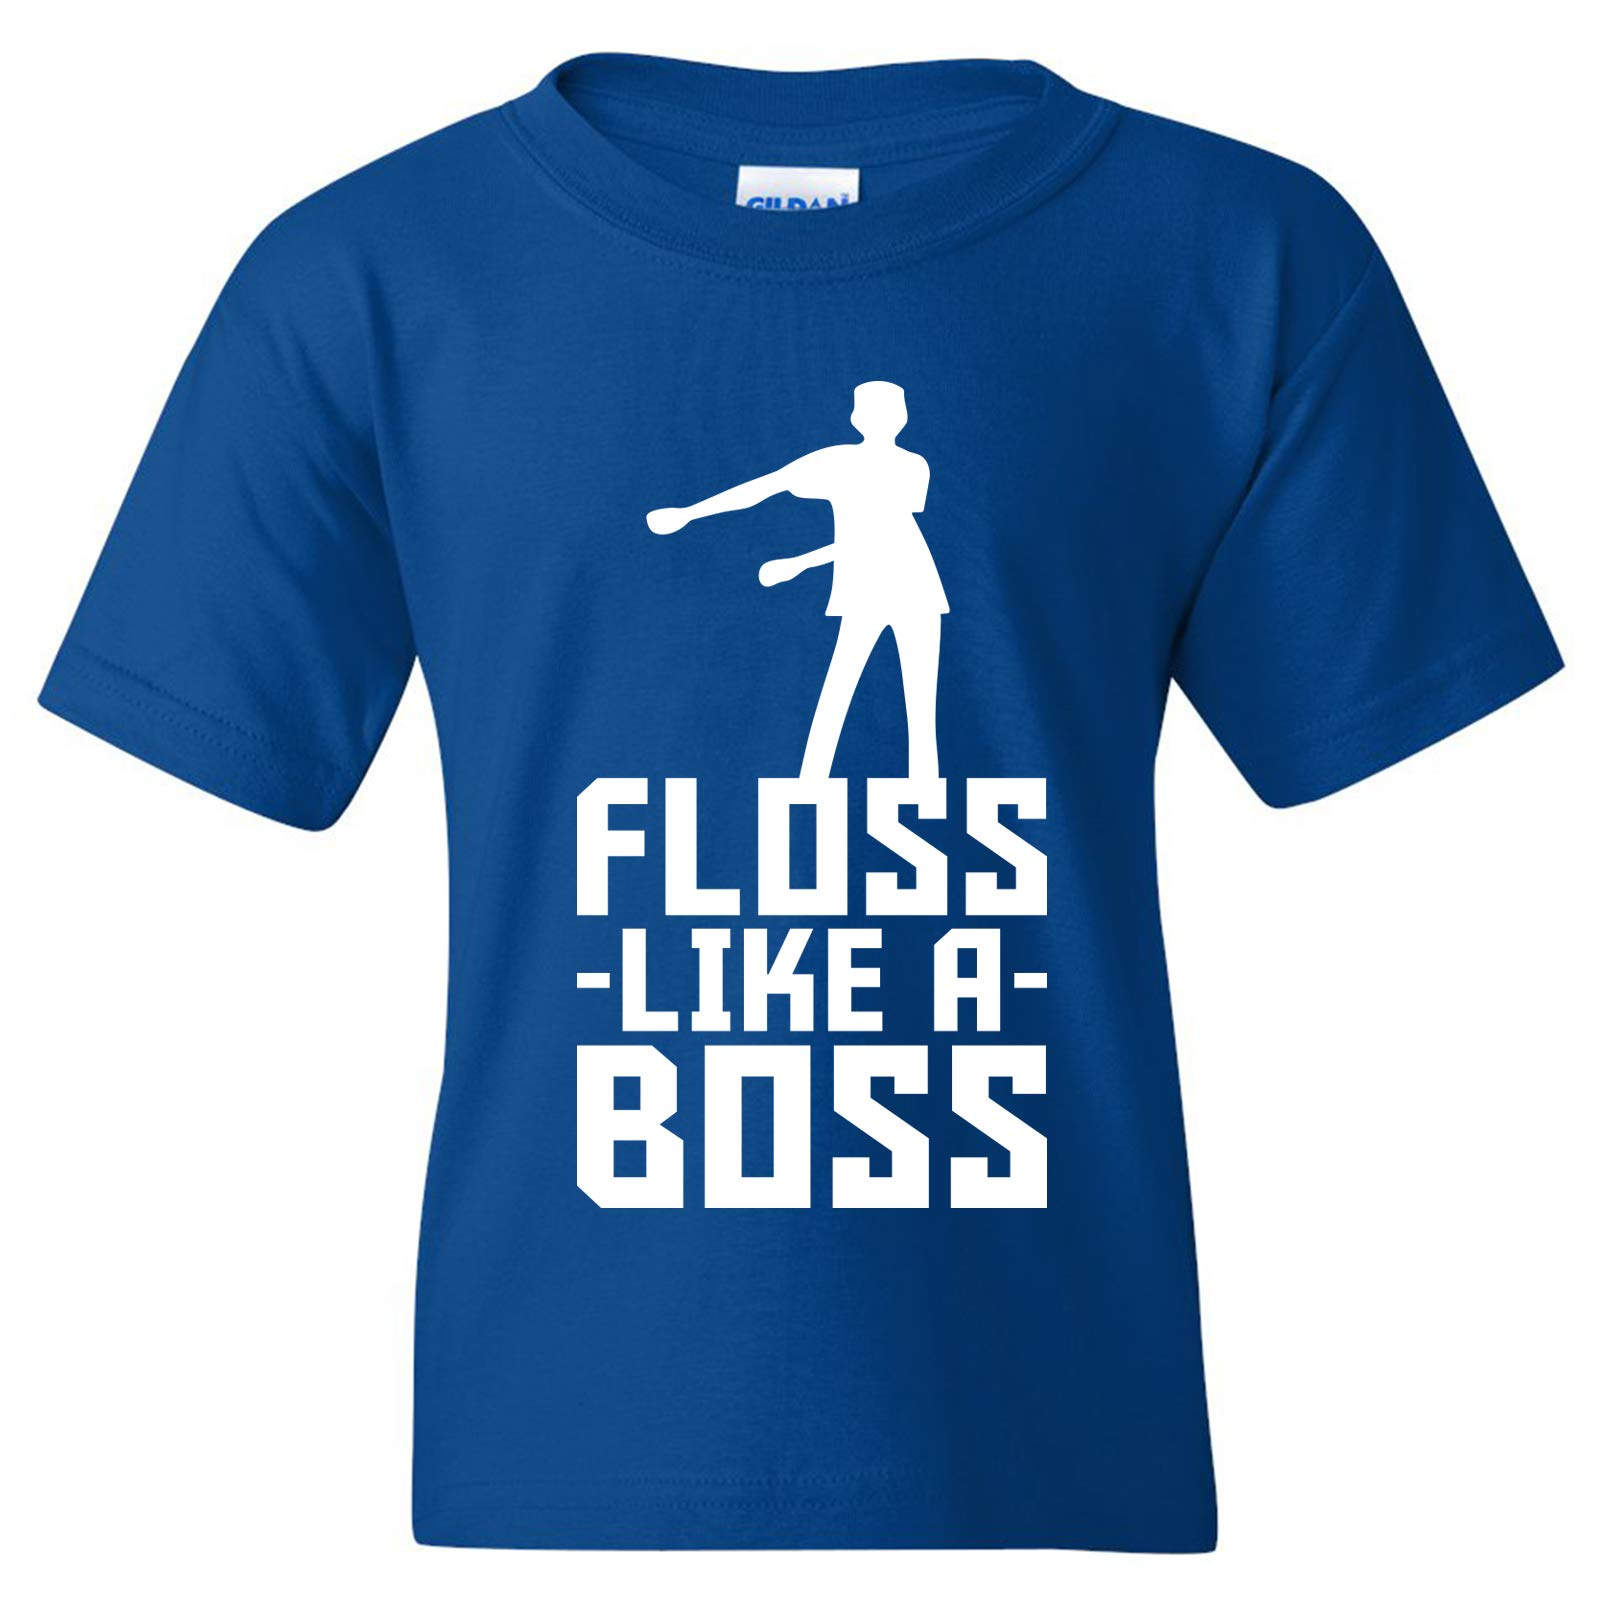 Floss Like A Boss - Back Pack Kid Flossin Dance Funny Emote Youth T Shirt - Medium - Royal by UGP Campus Apparel